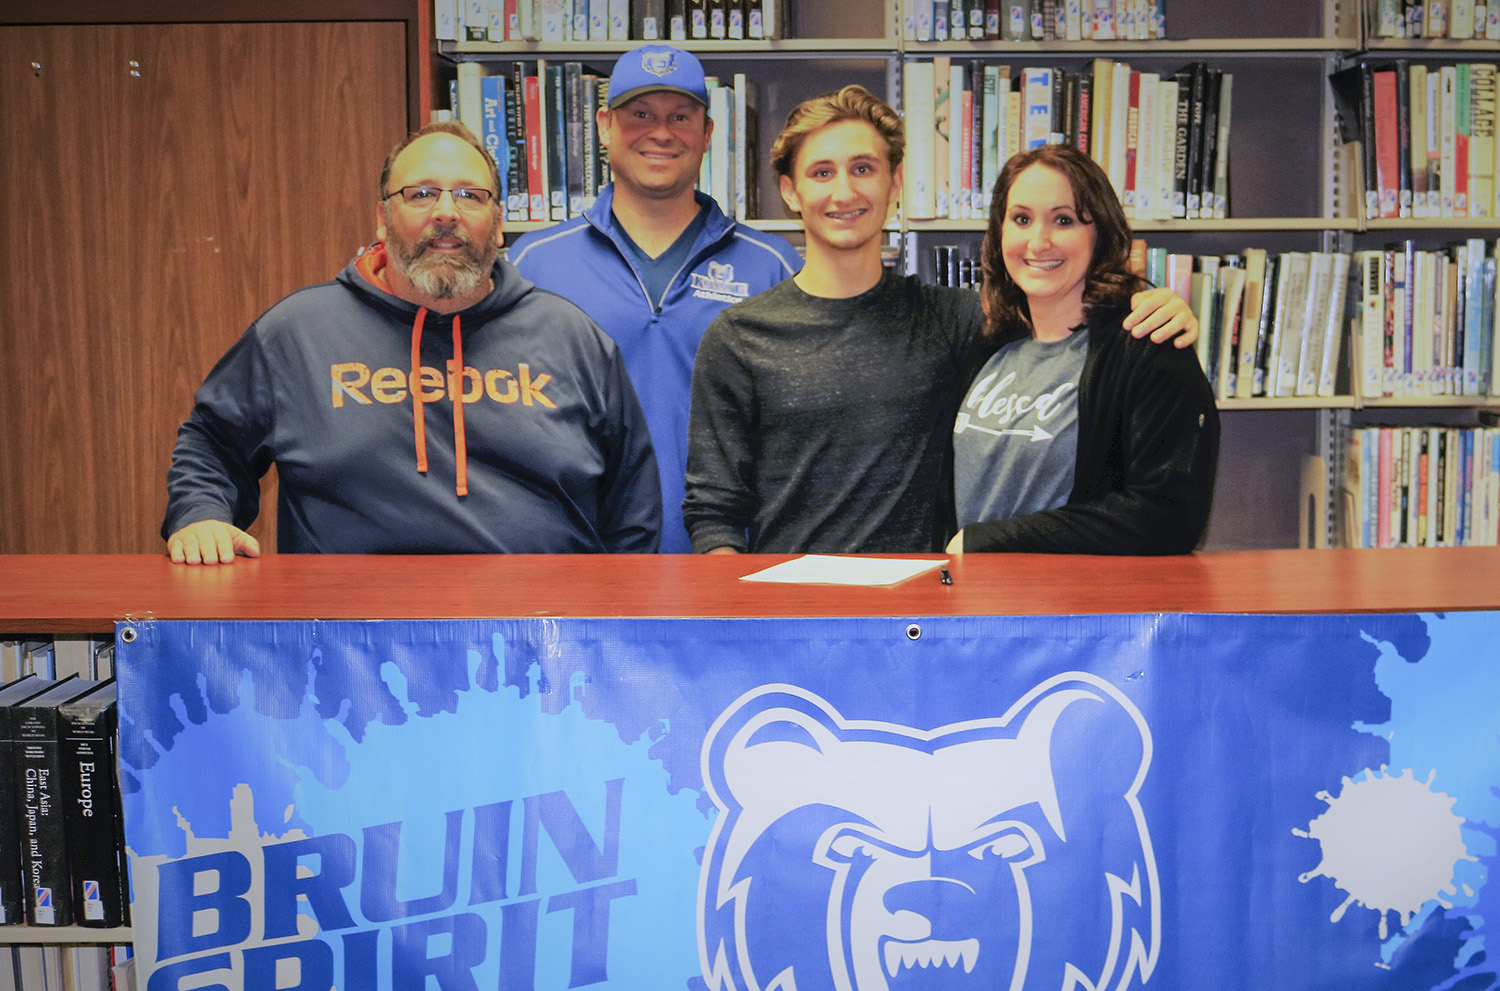 Pictured from left to right are Jeffery Falzone (father), KCC's Head Baseball Coach Eric Laskovy, KCC baseball signee Jacob Falzone and Buffy Falzone (mother).